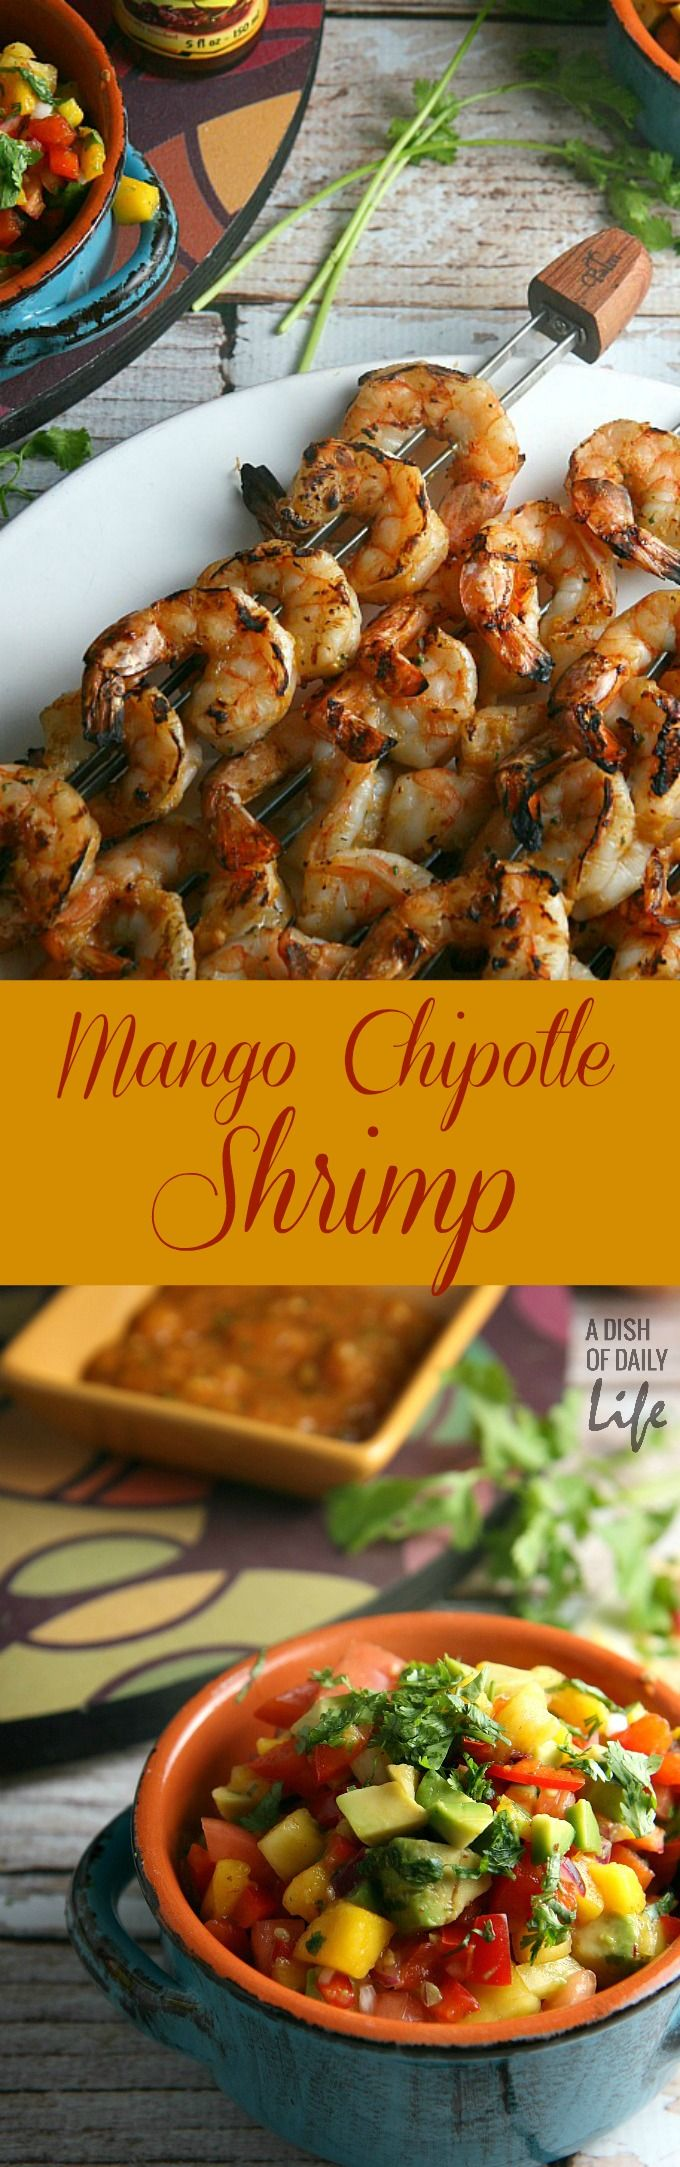 Mango Chipotle Shrimp...sweet mango paired with smoky chipotle makes for a barbeque sauce flavor sensation! Perfect for dinner on the patio or a summer party, this grilling recipe takes just over 30 minutes from start to finish. Perfect for Memorial Day, 4th of July and other summer bbqs!